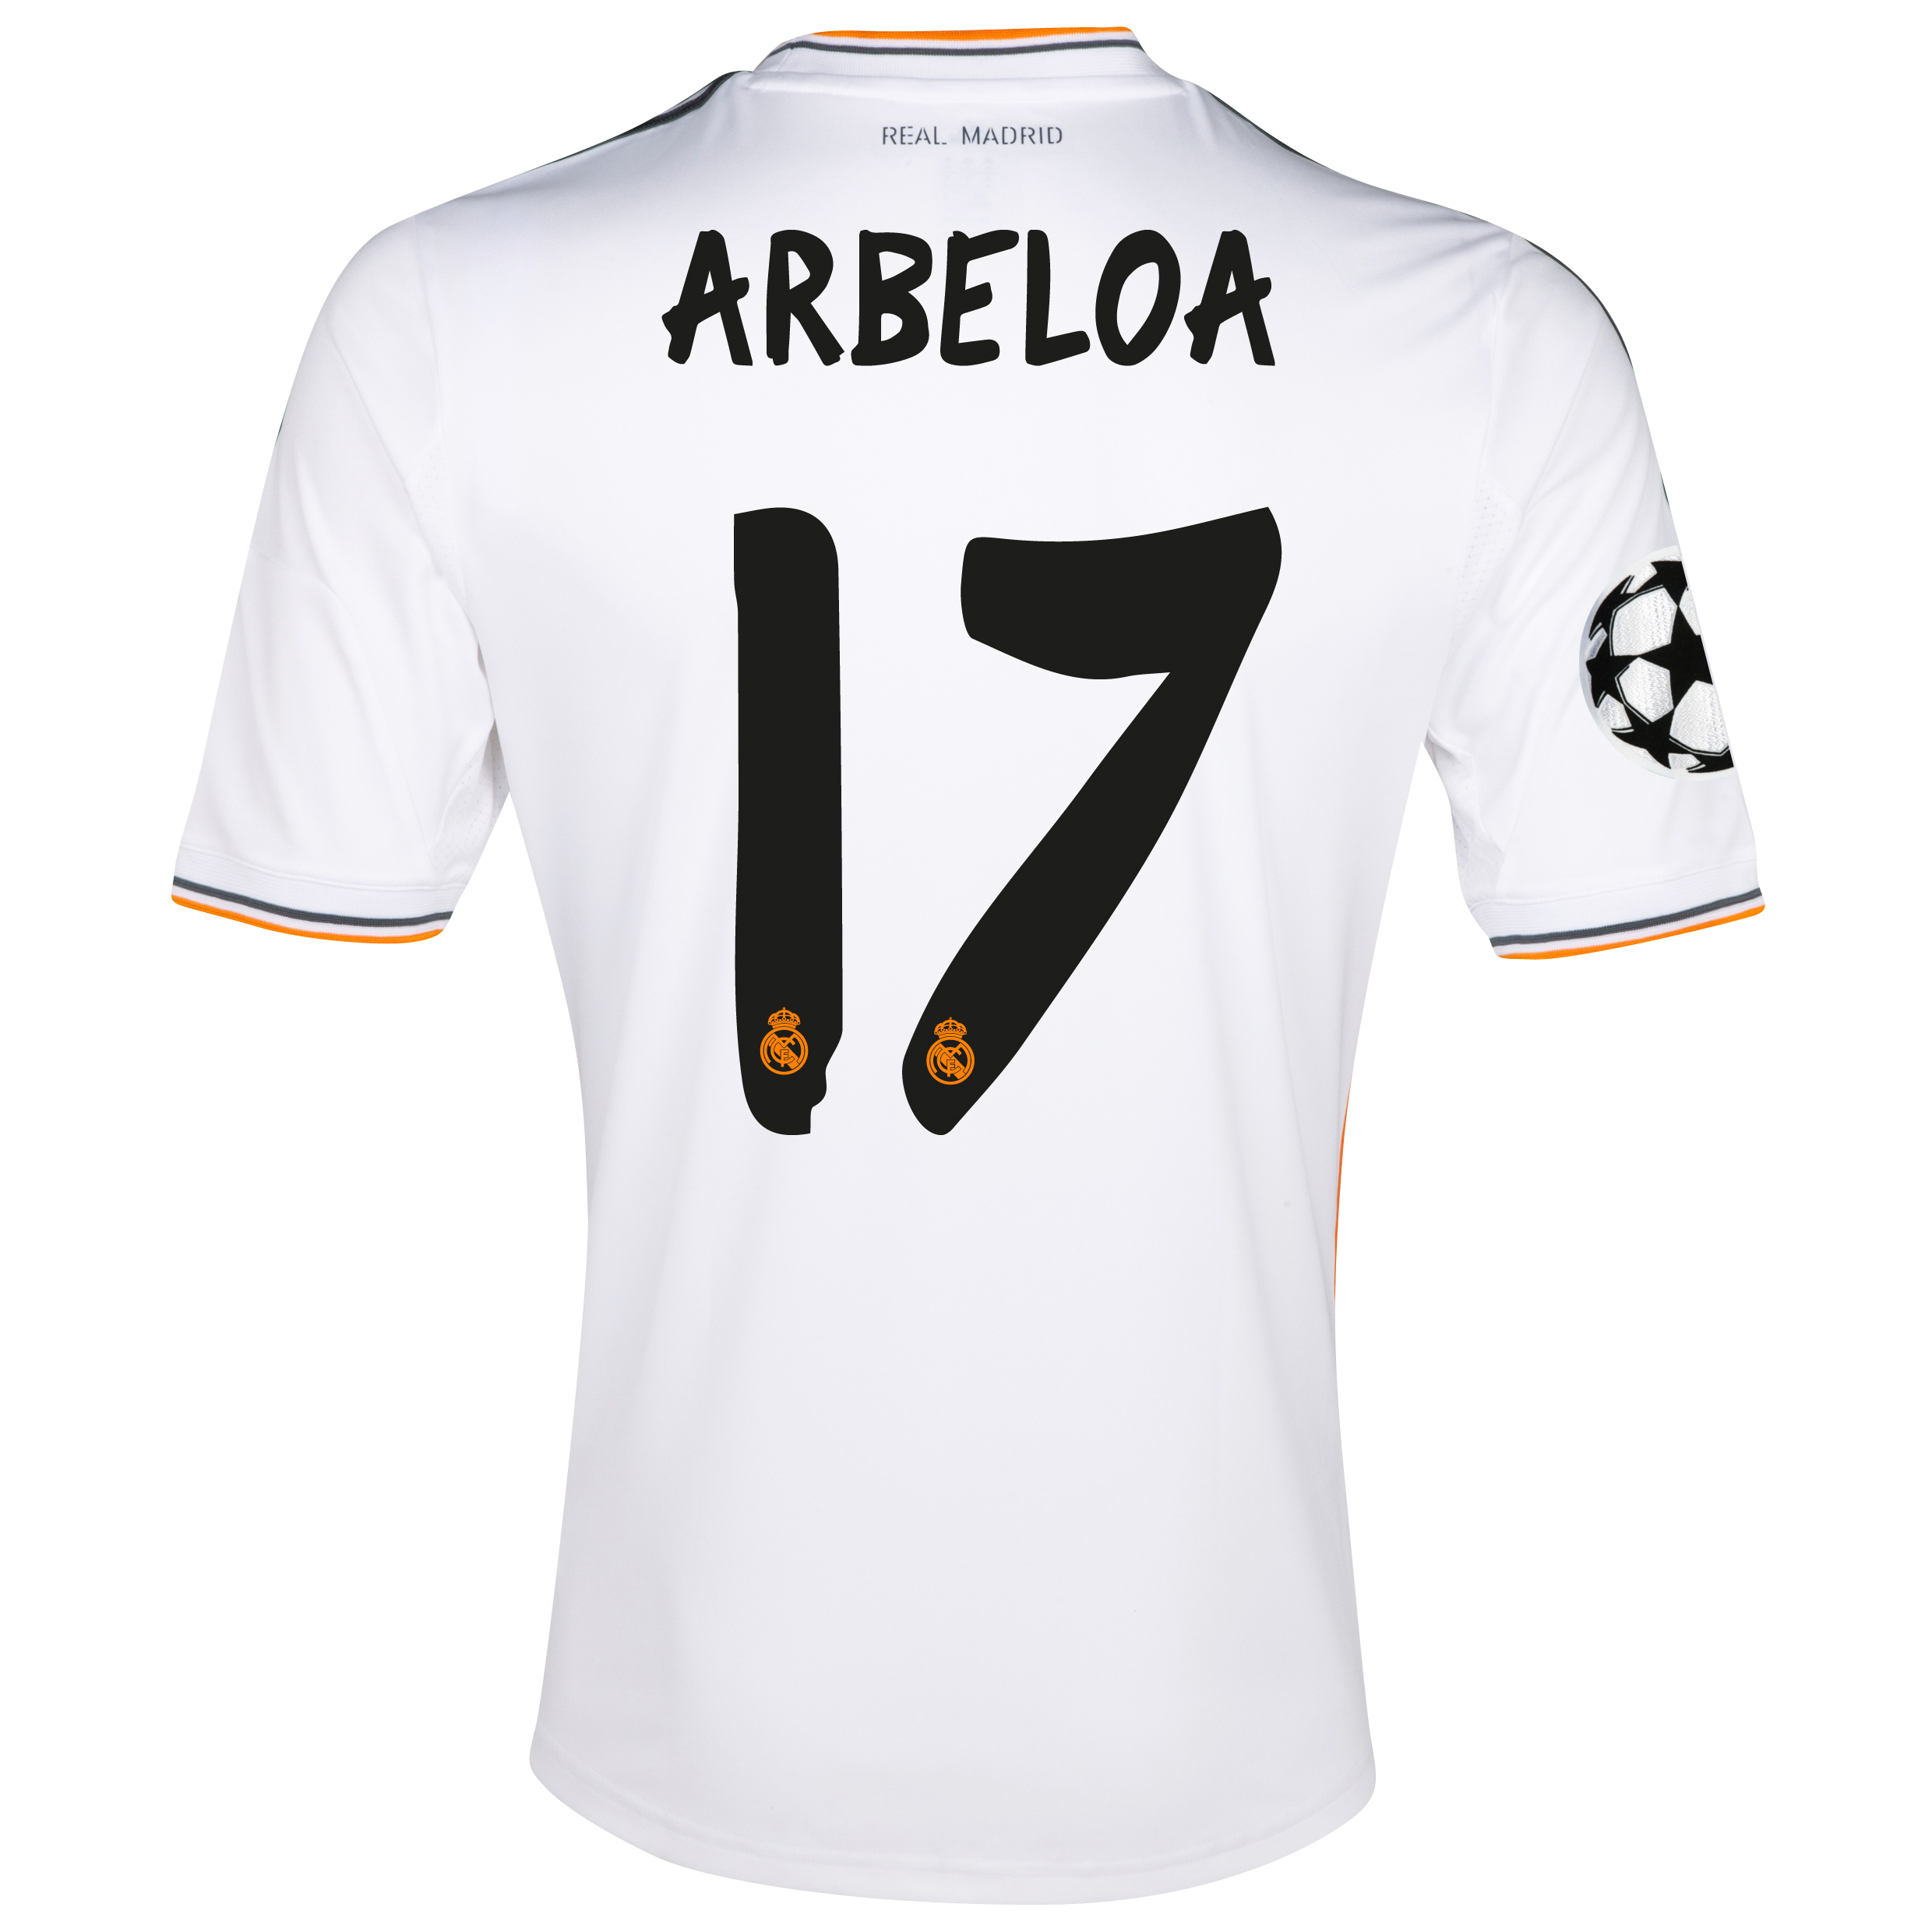 Real Madrid UEFA Champions League Home Shirt 2013/14 with Arbeloa 17 printing